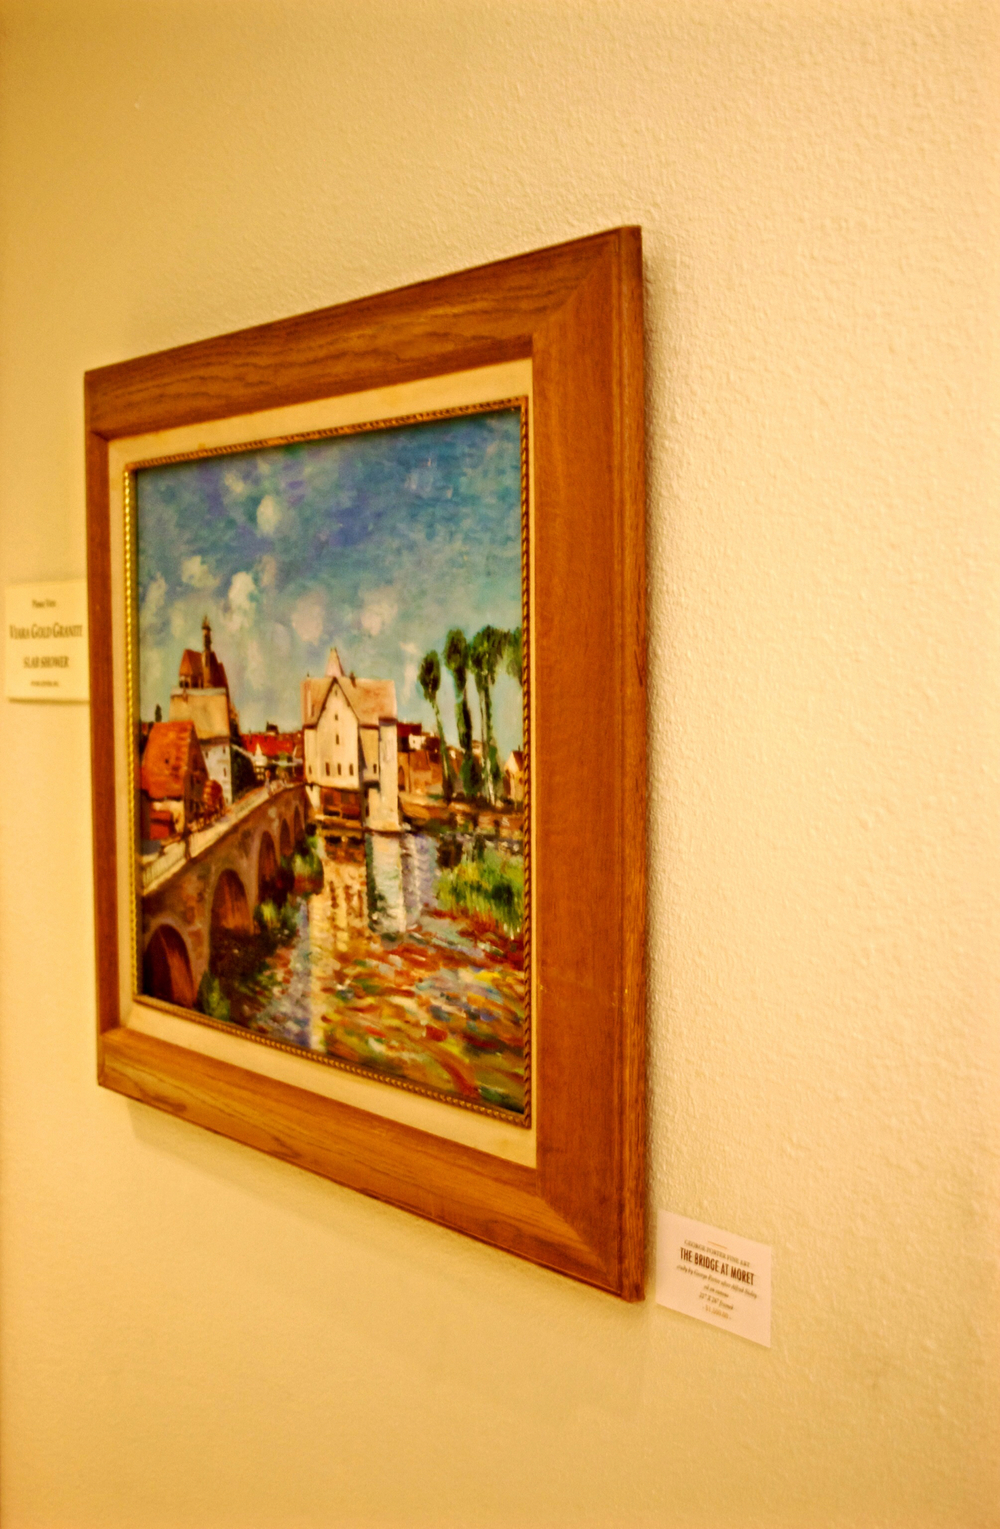 The Bridge at Moret by George Porter after Alfred Sisley at Stone Center Inc